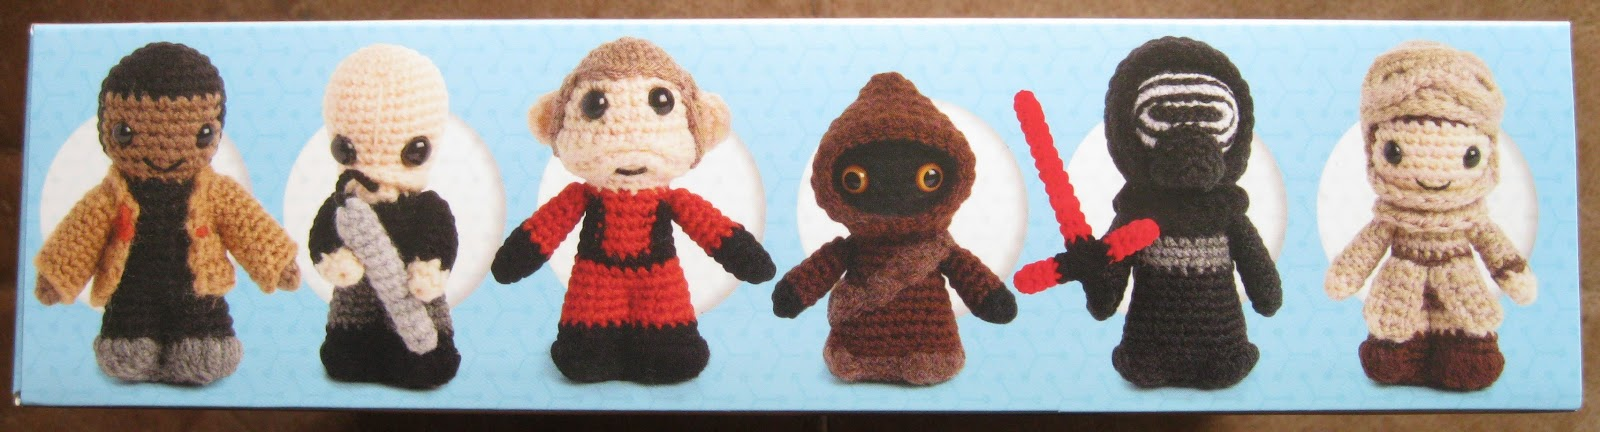 Lucyravenscar Crochet Creatures Star Wars Even More Crochet Is Here